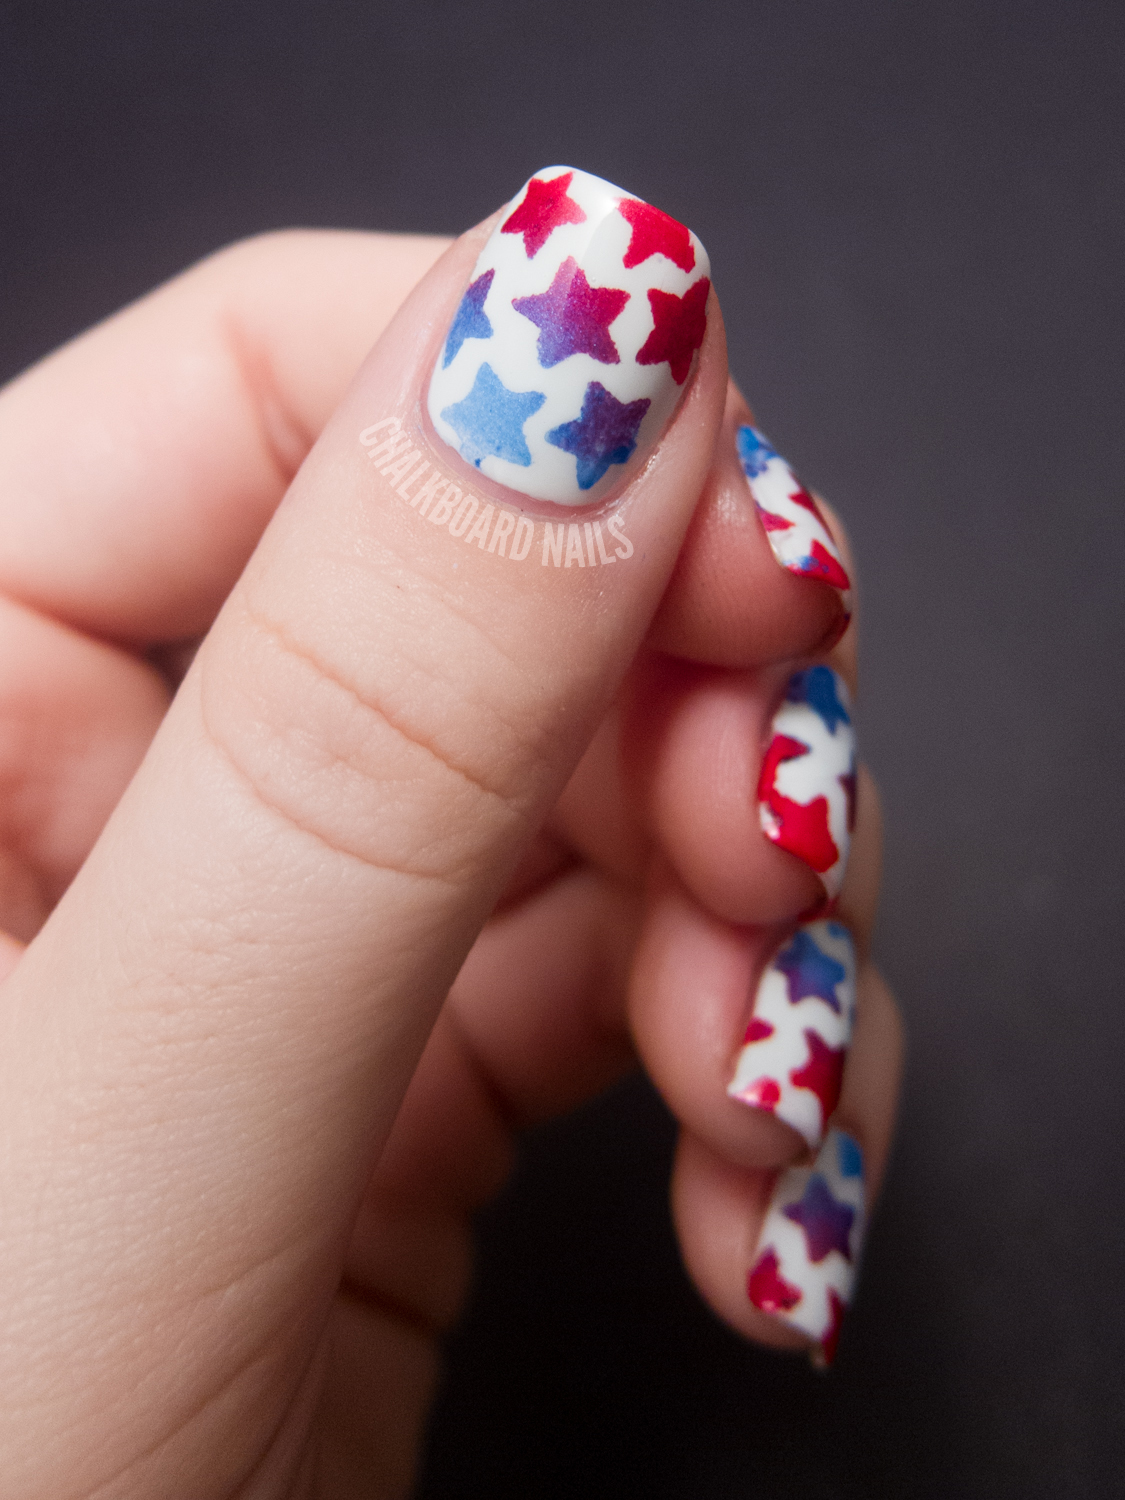 Nail Art Ideas » July 4 Nail Art Design - Pictures of Nail Art ...